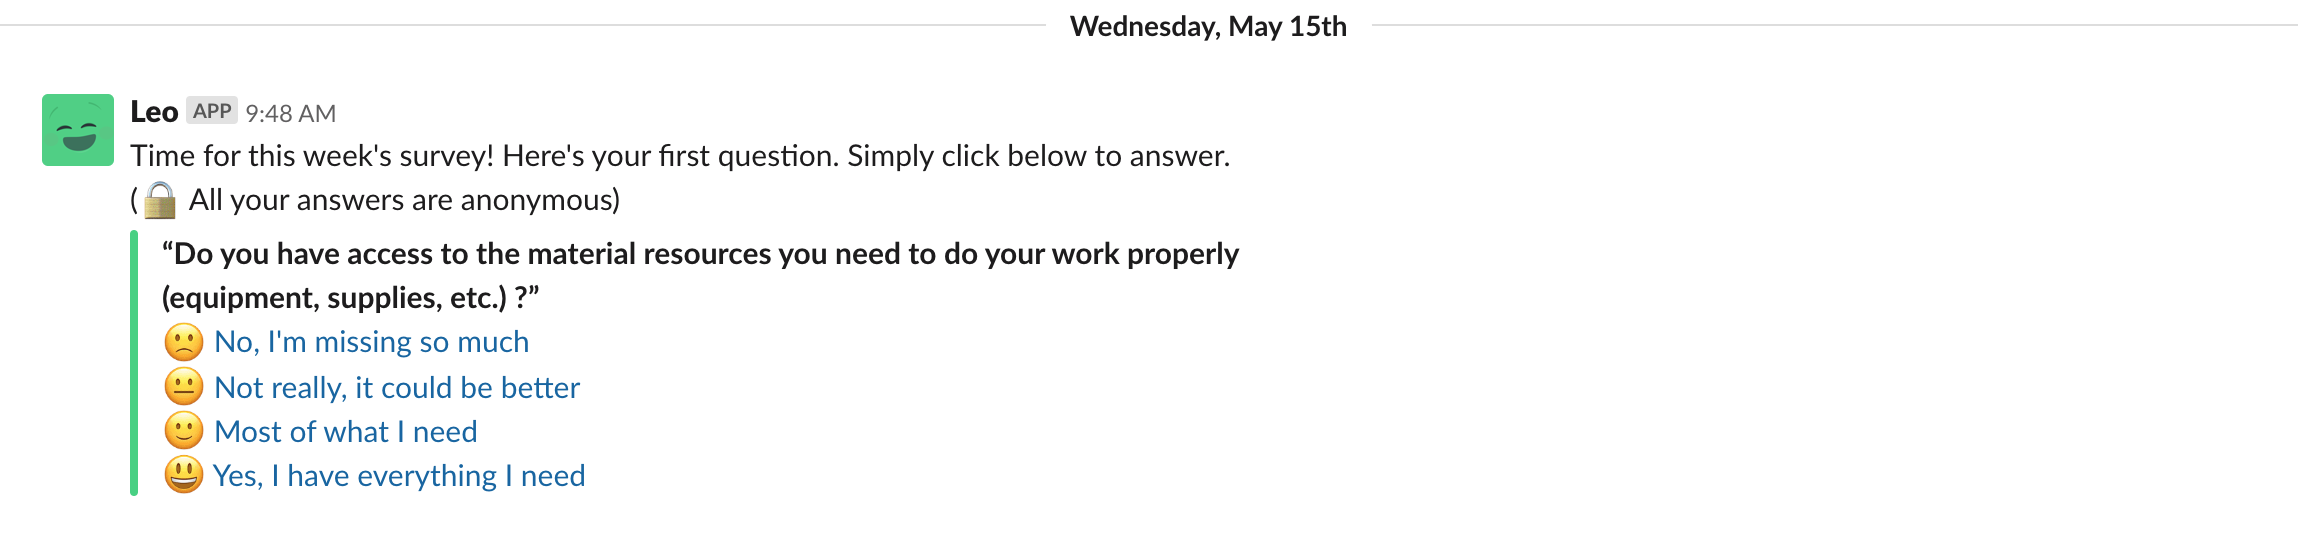 We use Slack to encourage our team members to complete Officevibe pulse surveys.